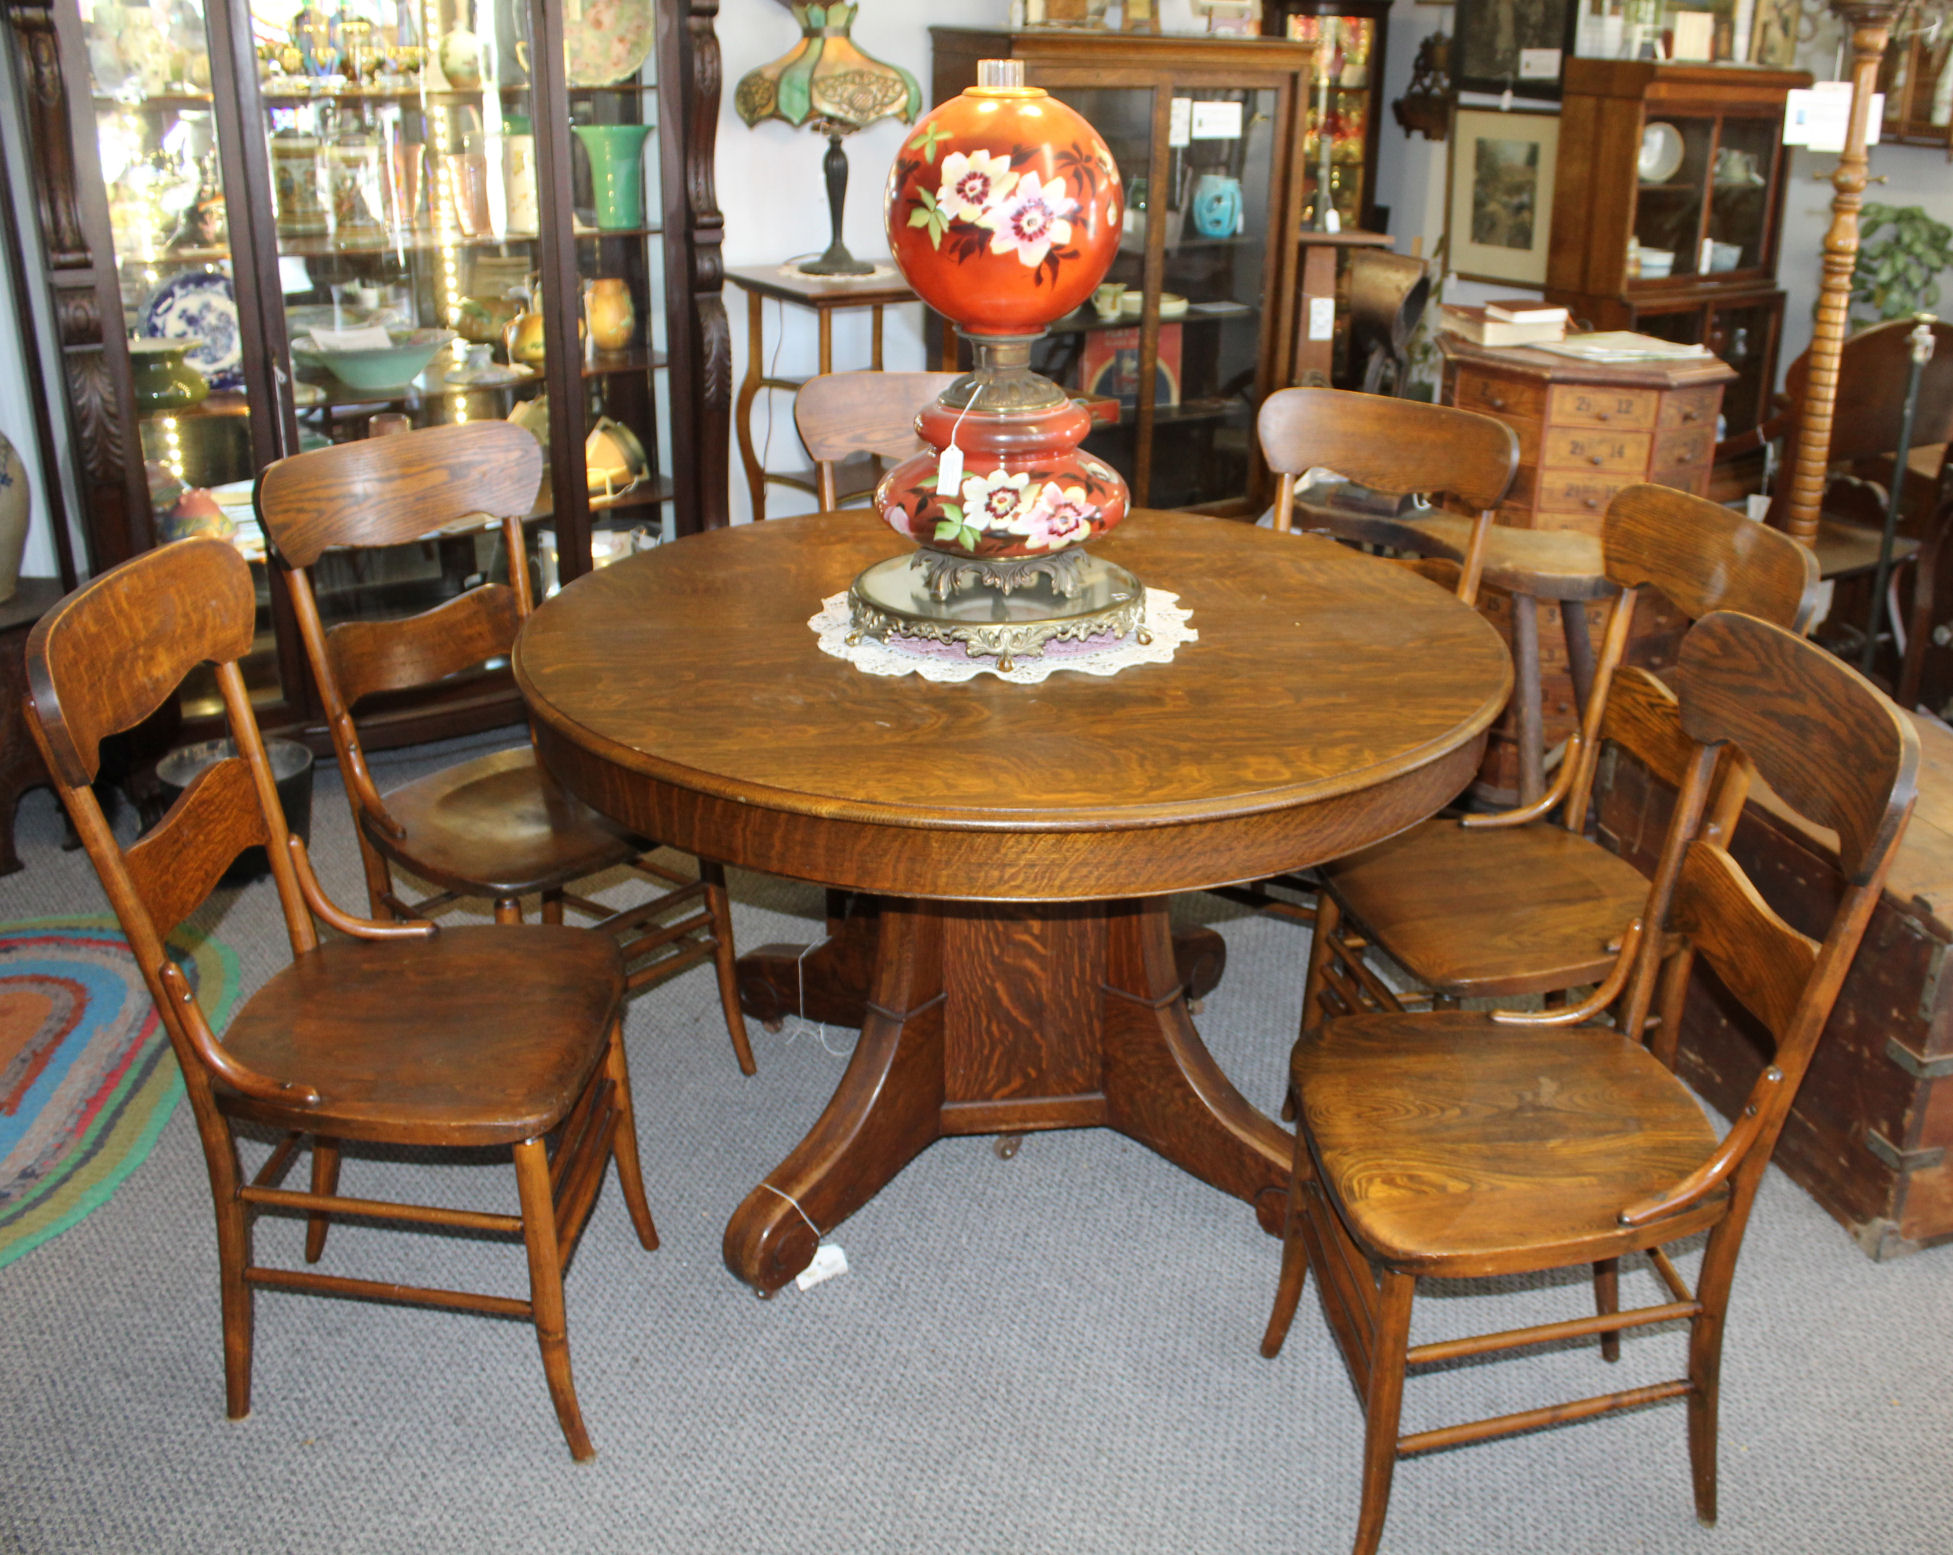 Antique Round Quarter Sawn Oak Dining Table With Two Leaves 1 550